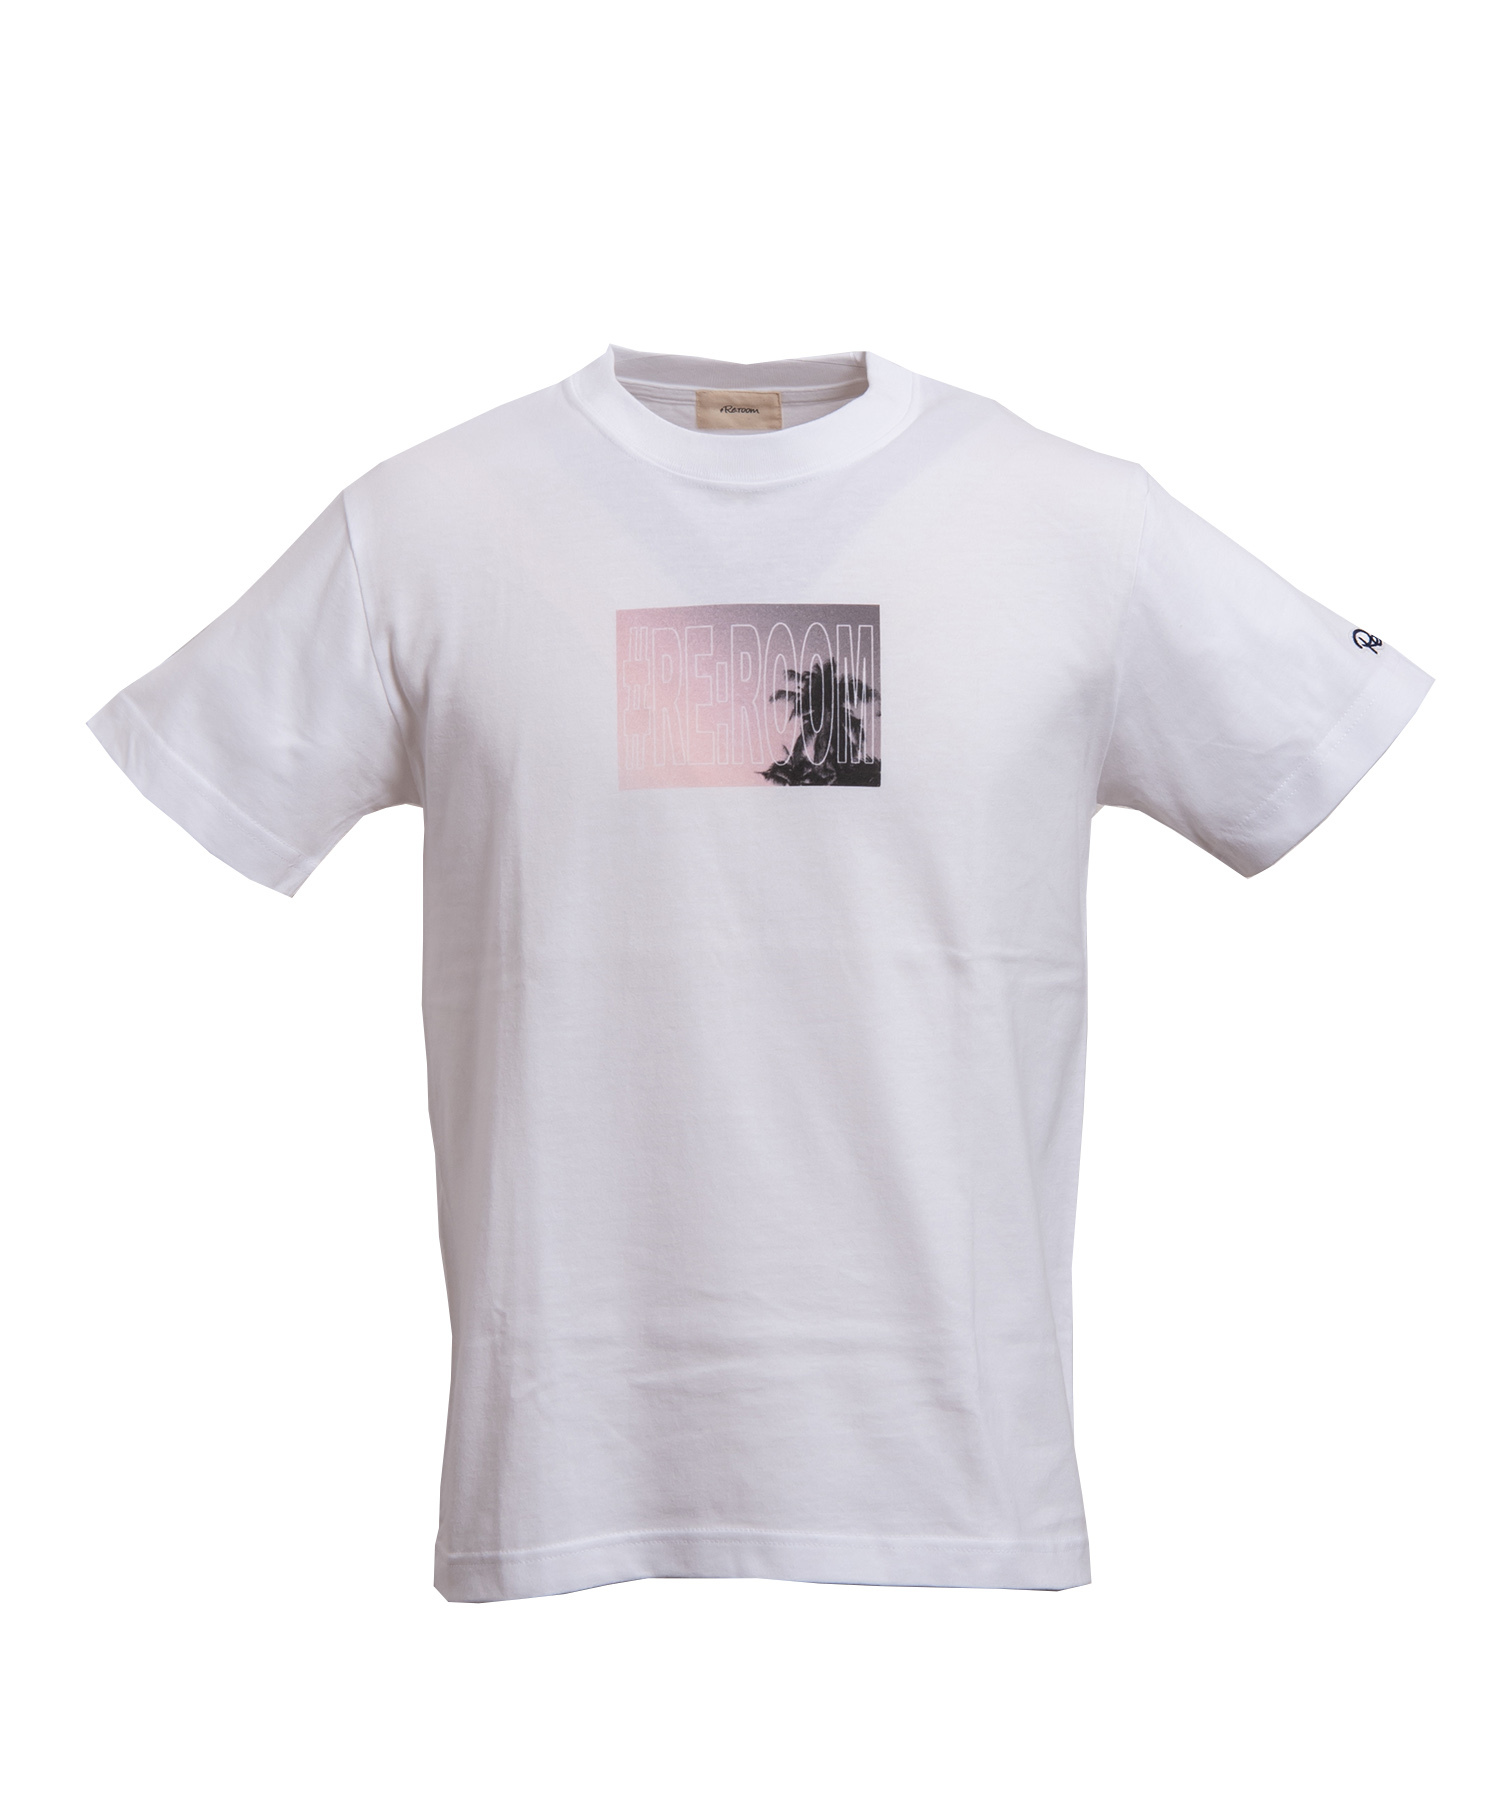 PALM TREE SMALL PHOTO LOGO T-shirt[REC216]